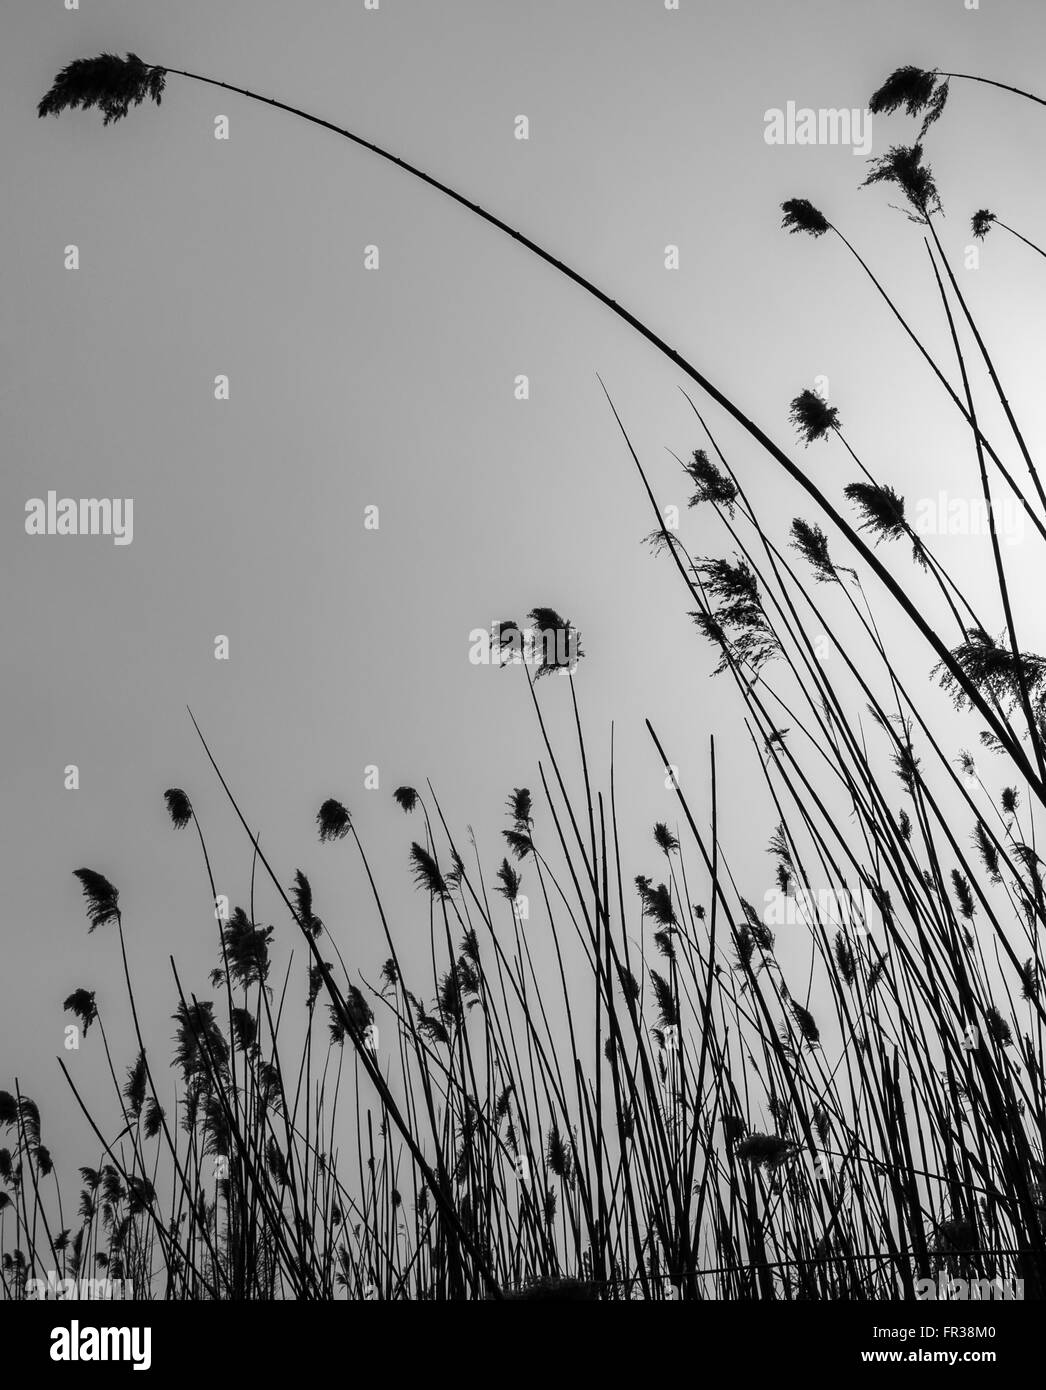 Silhouette of a Common Reed bed (Phragmites australis) in black and white - Stock Image